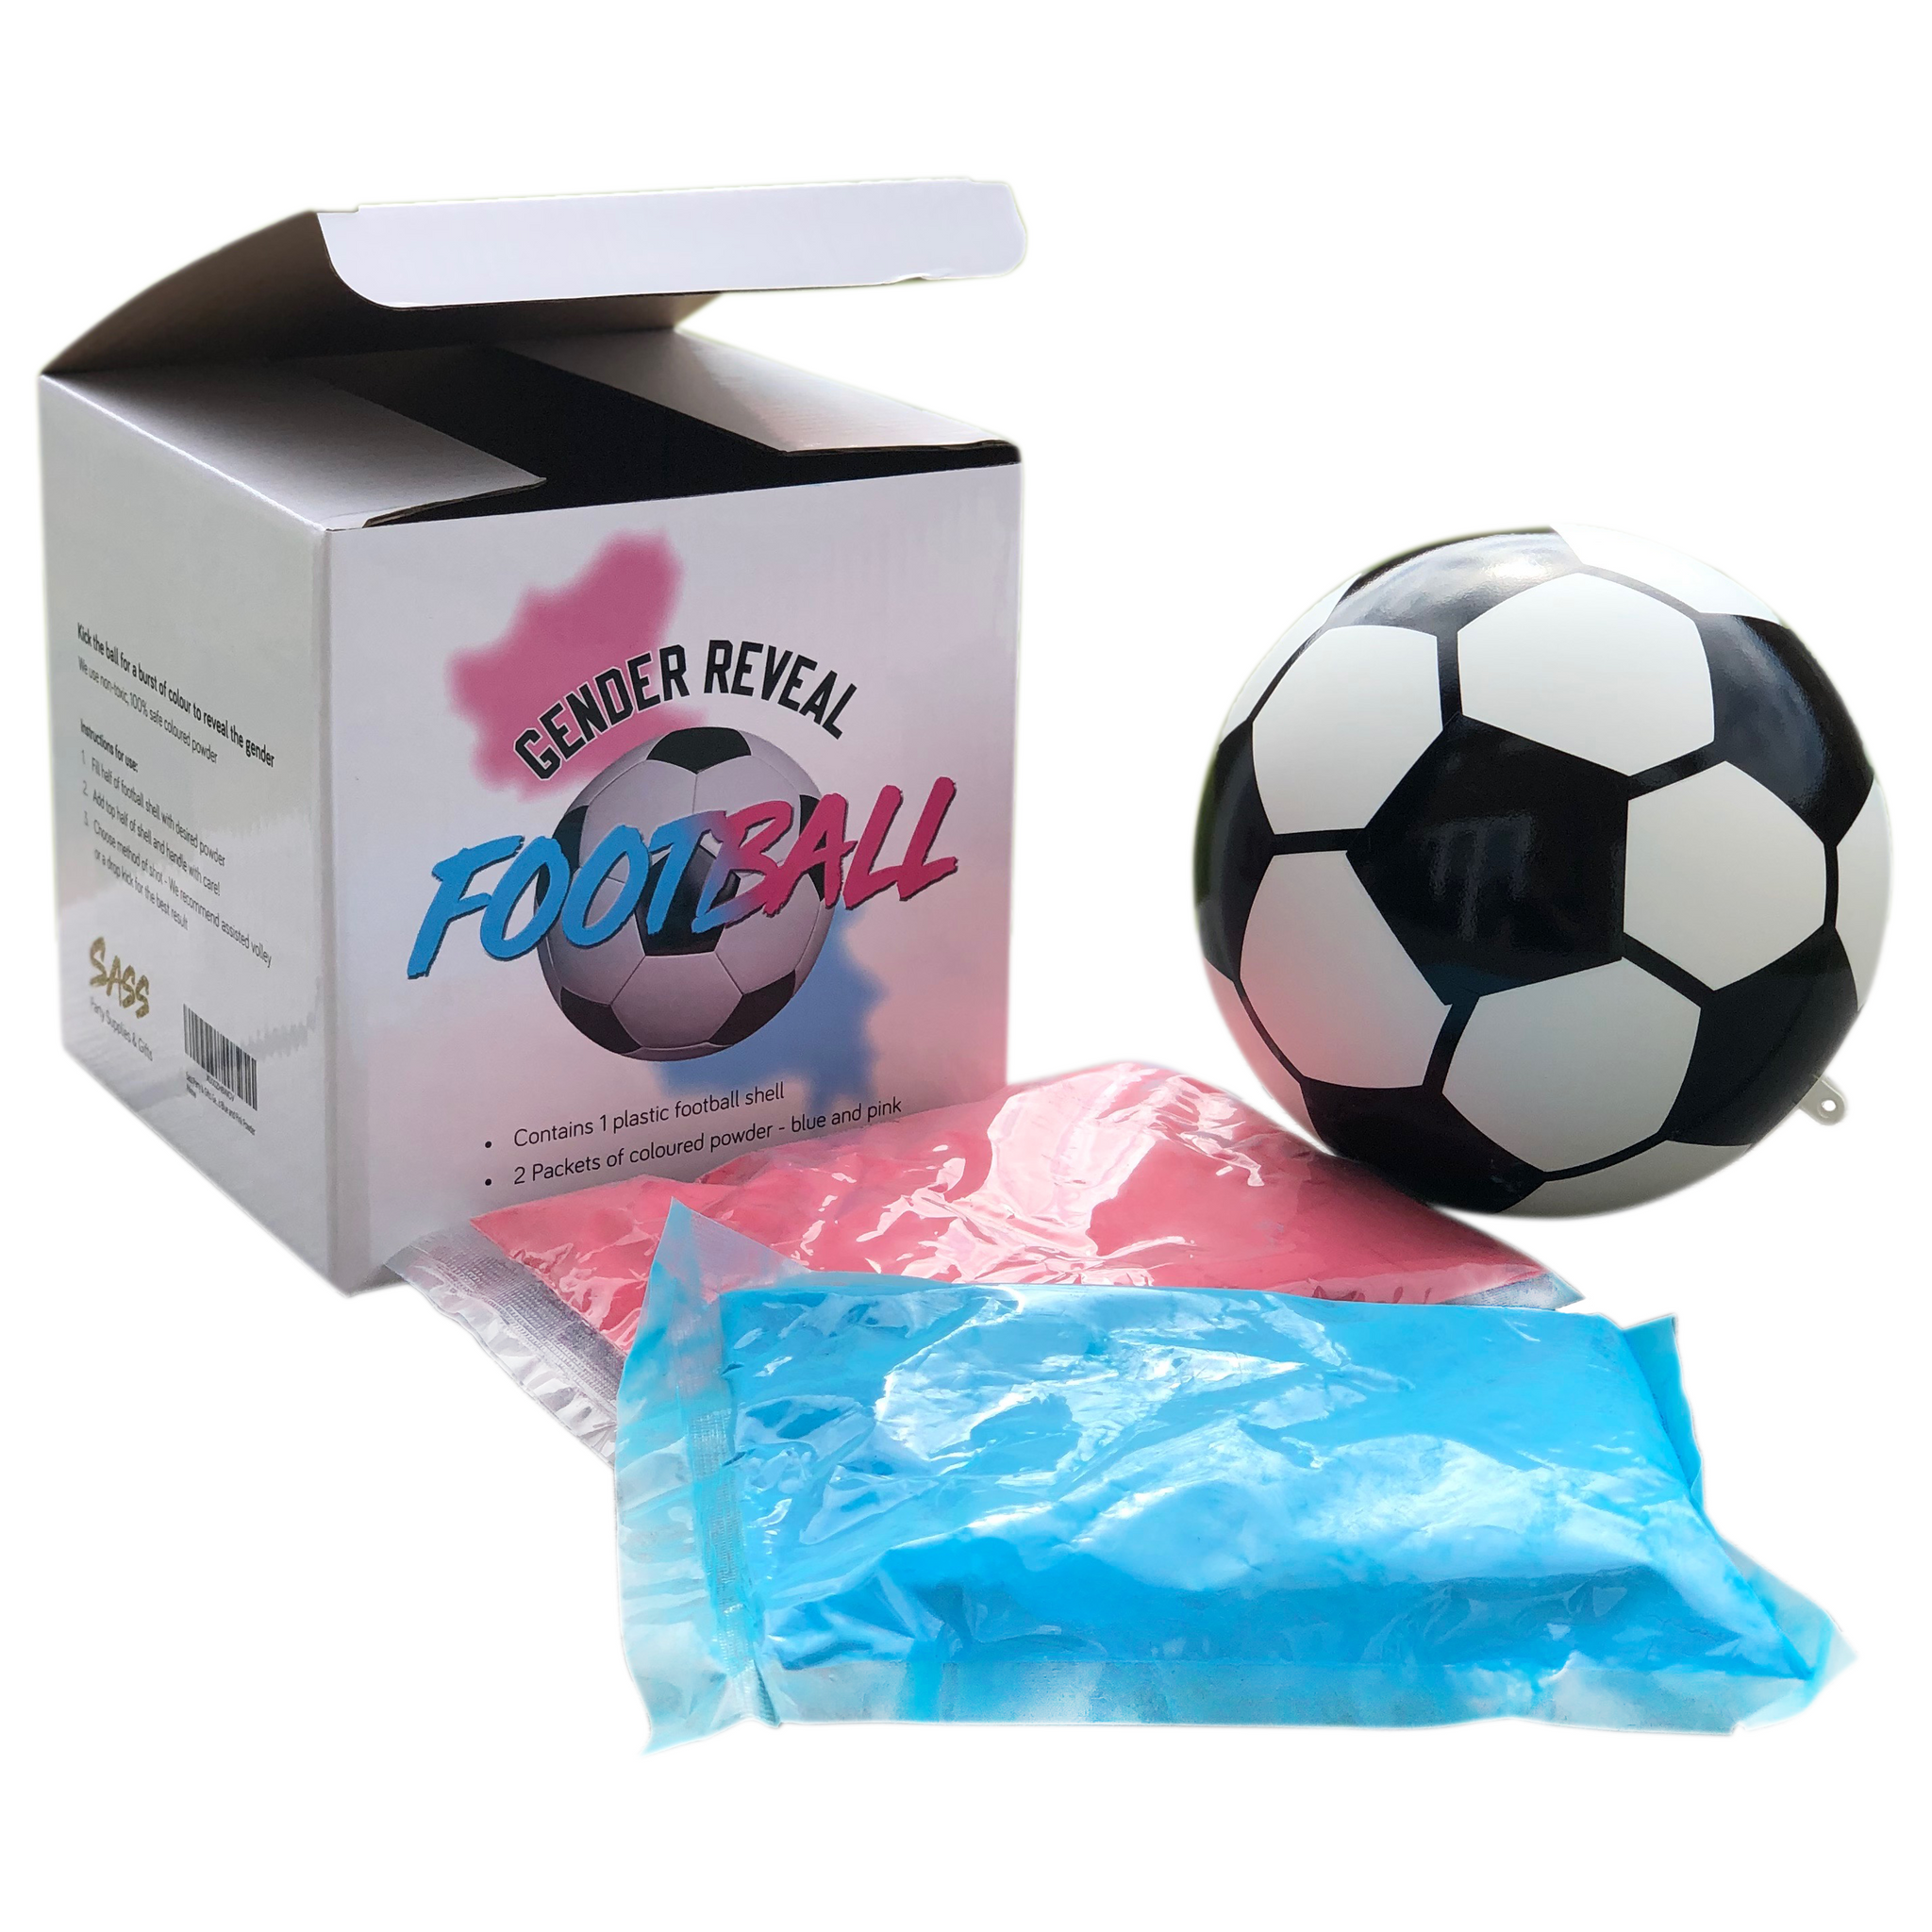 Gender Reveal Exploding Football - Includes Blue and Pink Powder